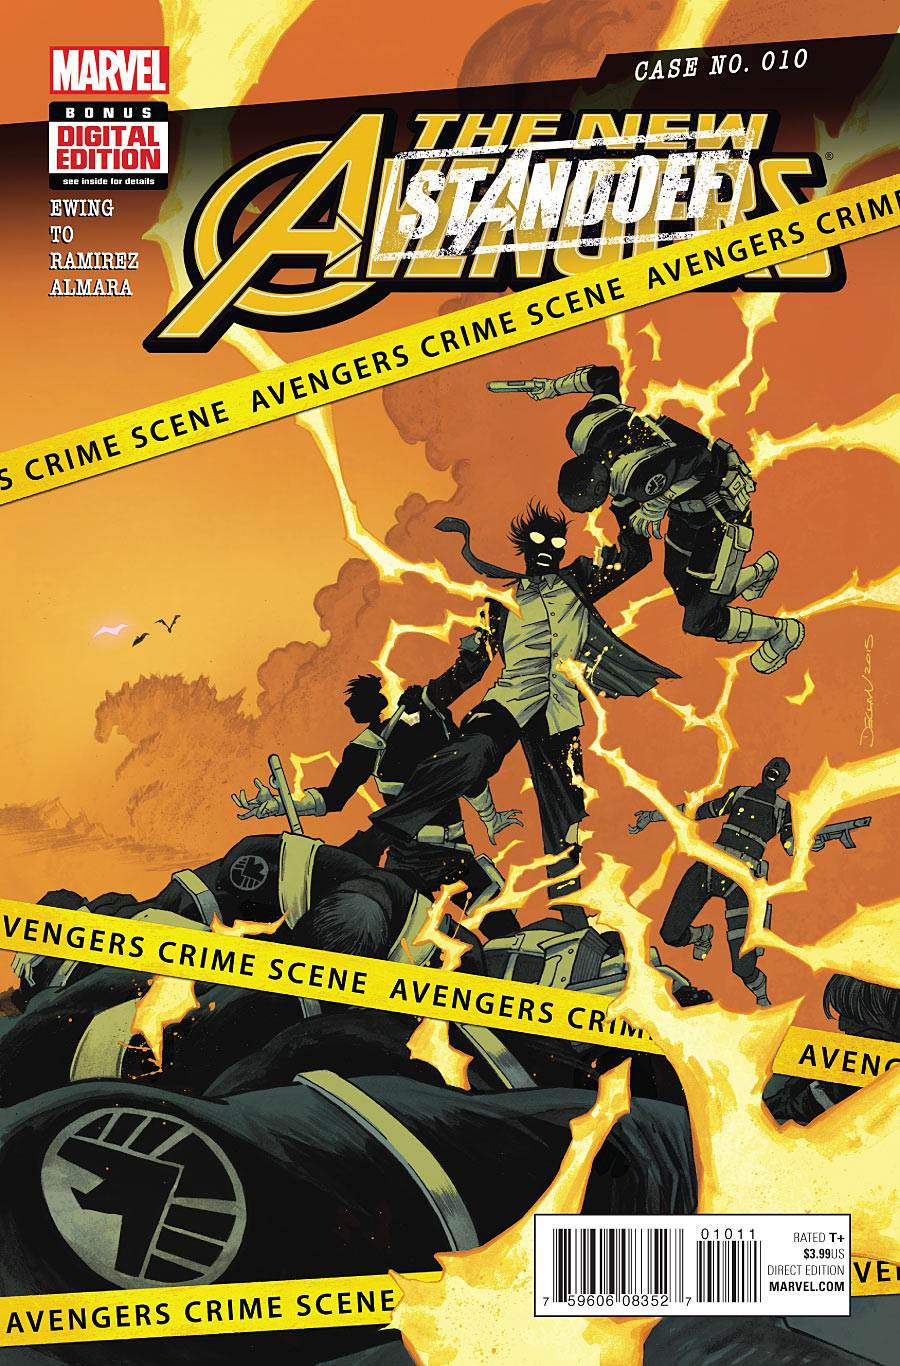 New Avengers Vol 4 #10 (Standoff Tie-In)